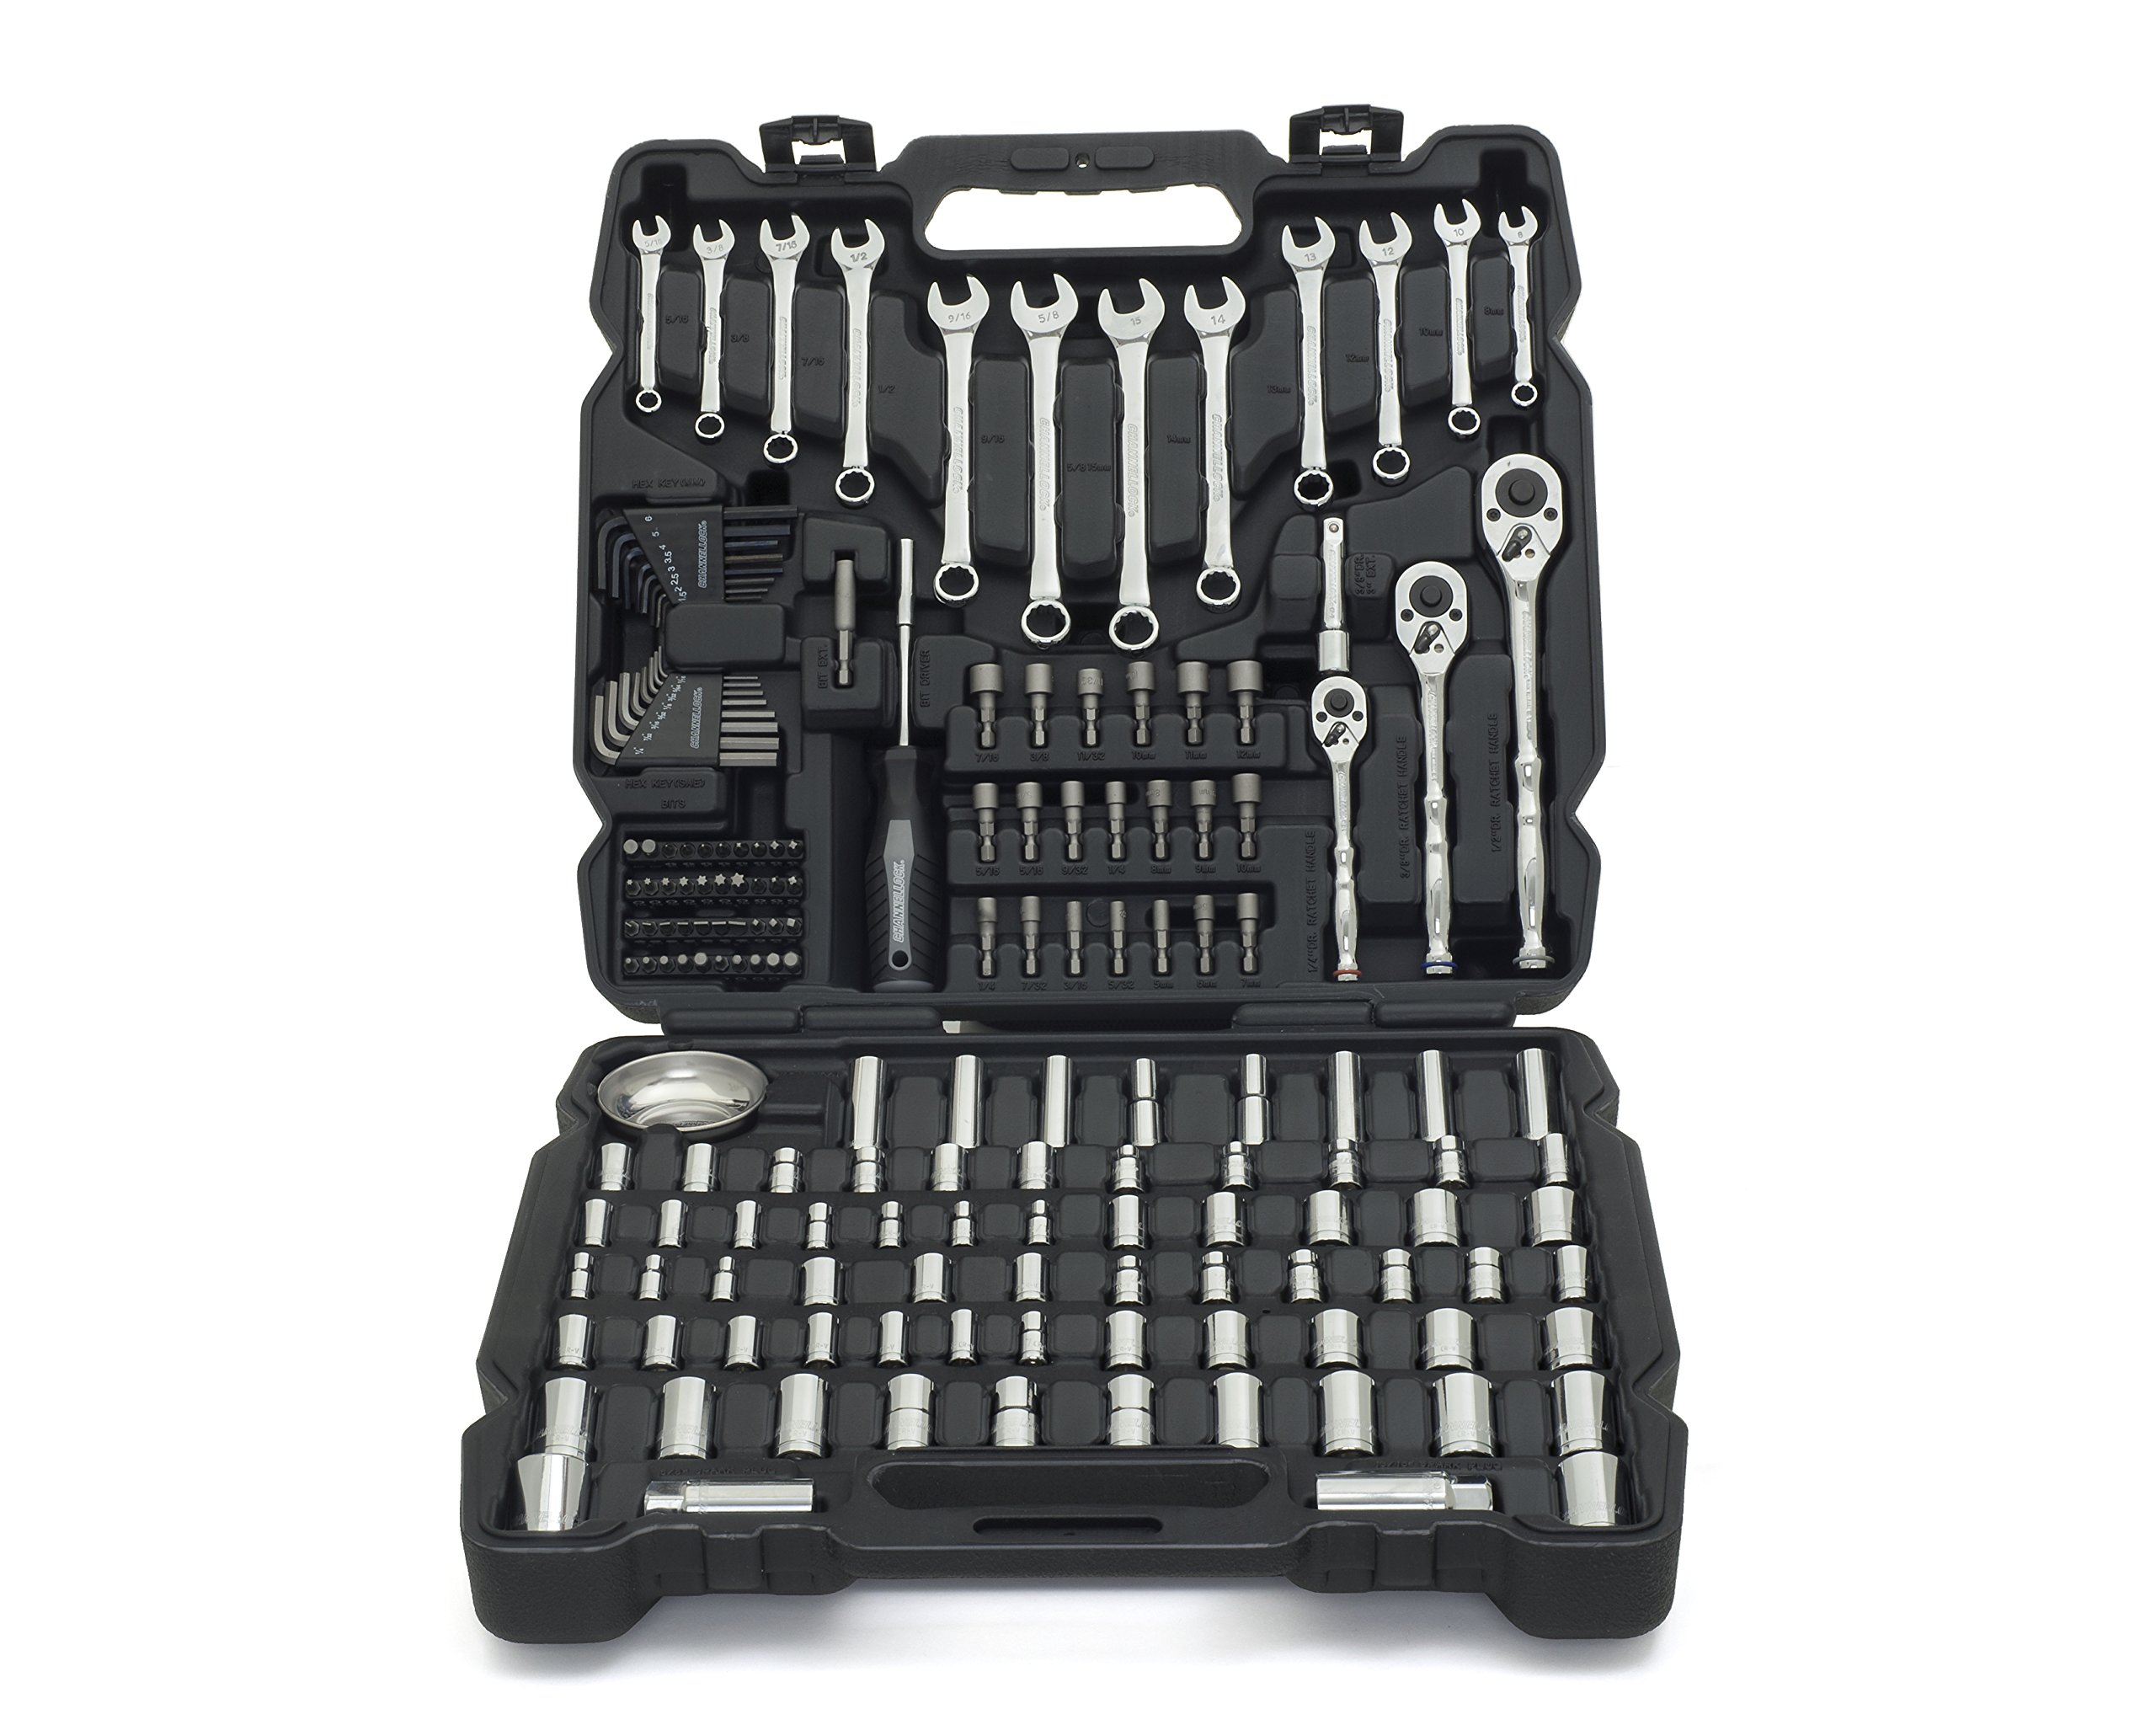 Channellock 39053 Mechanics Tool Set, 171-Piece